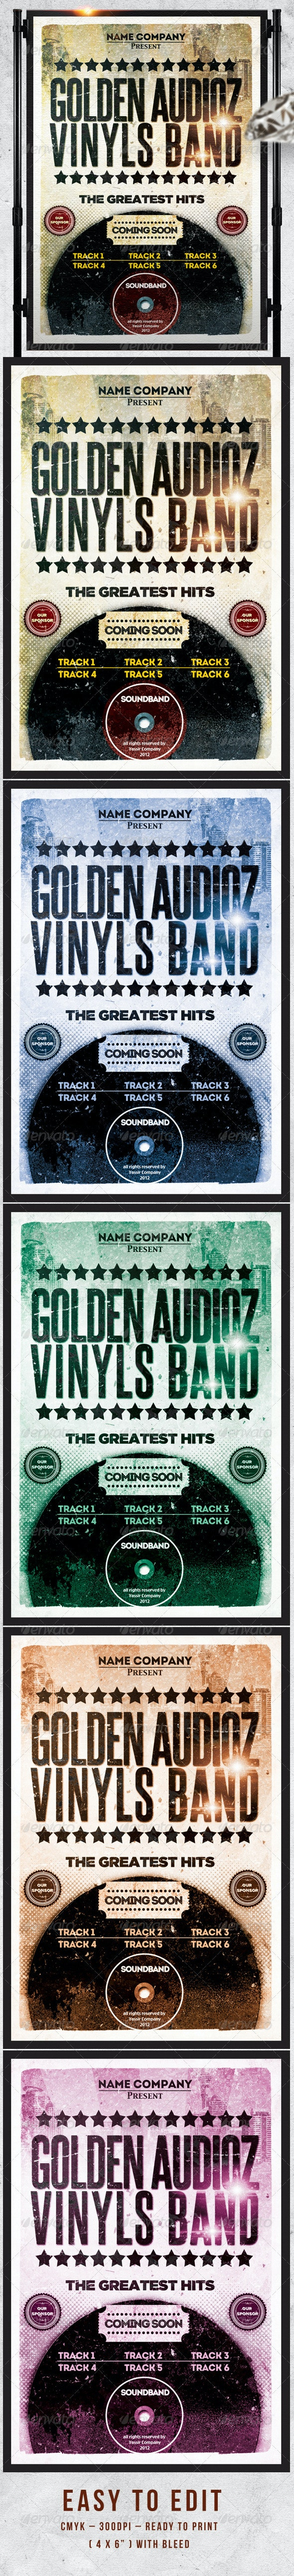 Golden Odioz  Flayer  Template  - Events Flyers